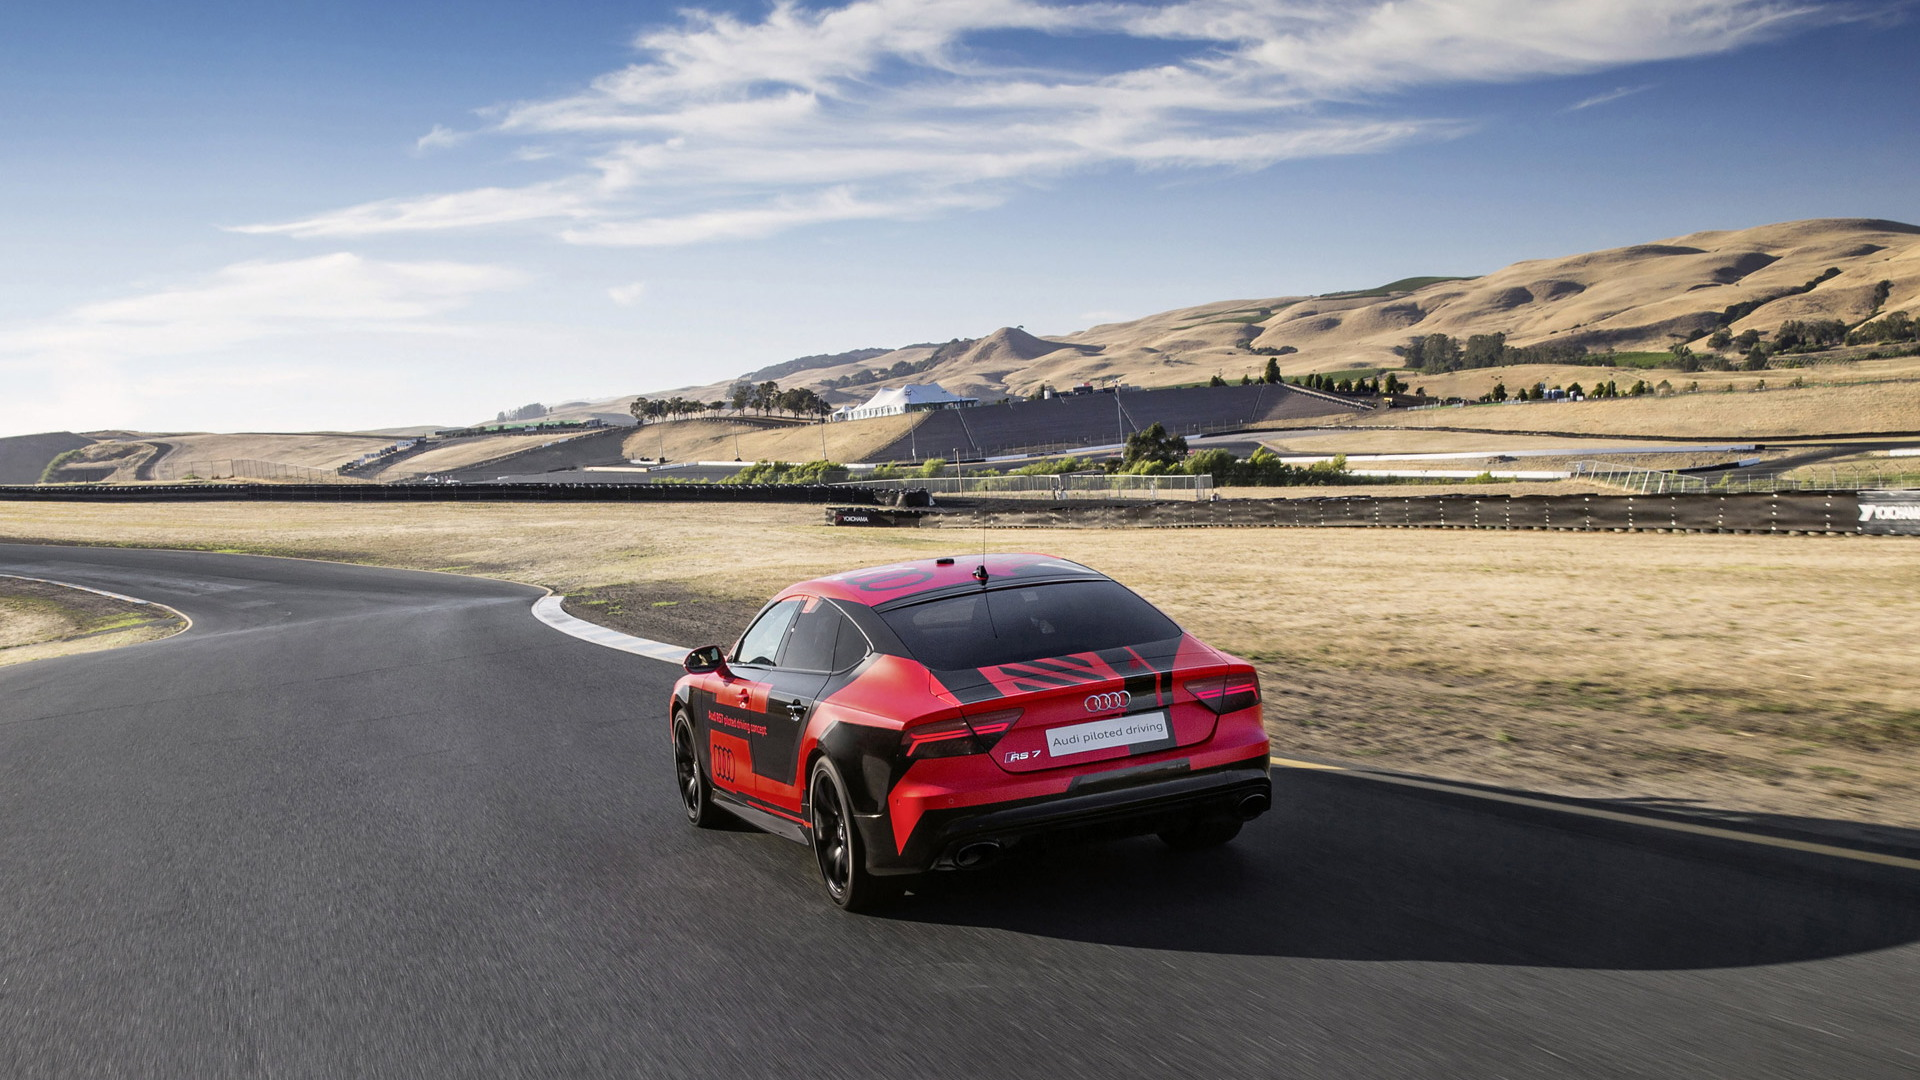 Audi RS 7 Piloted Driving concept at Sonoma Raceway, July 2015